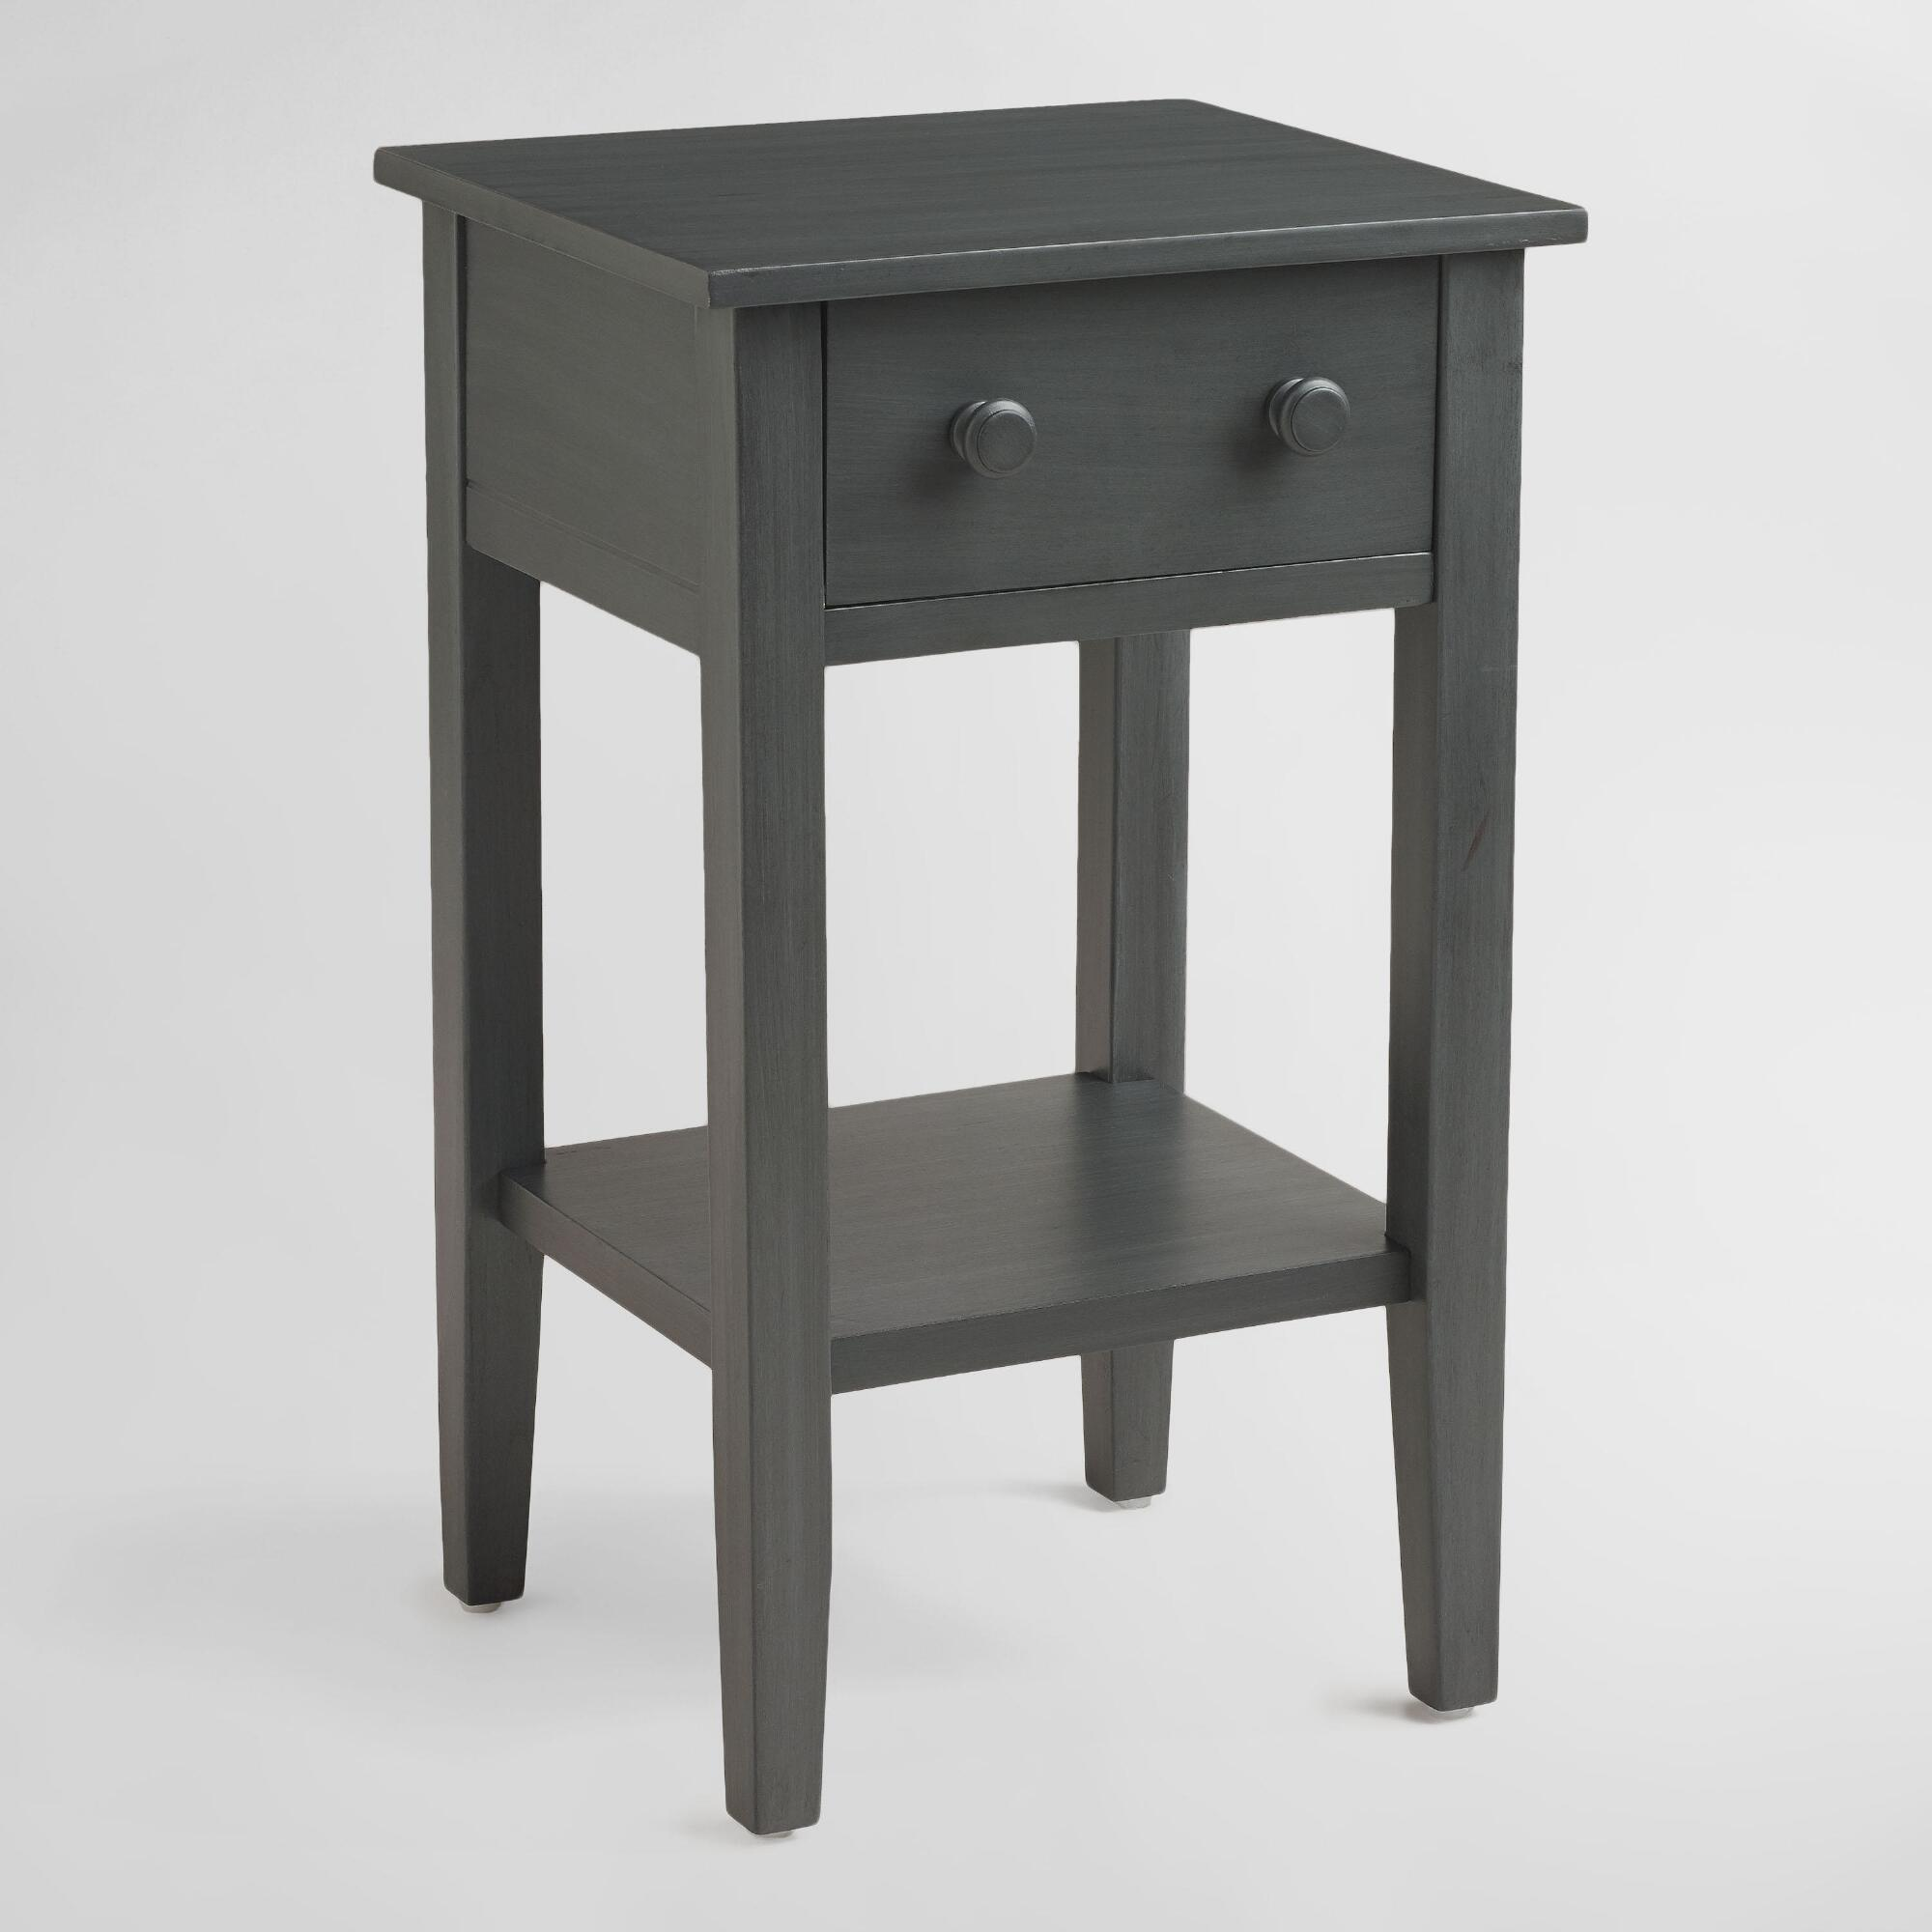 dressers chests and bedroom storage world market iipsrv fcgi long accent table tobacco blue sara nightstand best patio furniture concrete top dining solid pine outdoor side grey